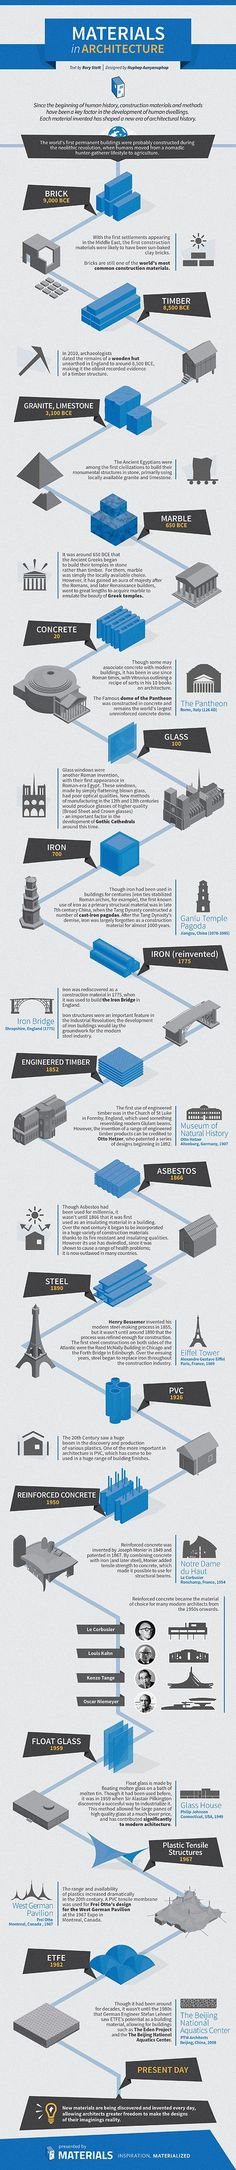 INFOGRAPHIC: Materials in Architecture (A History) | ArchDaily